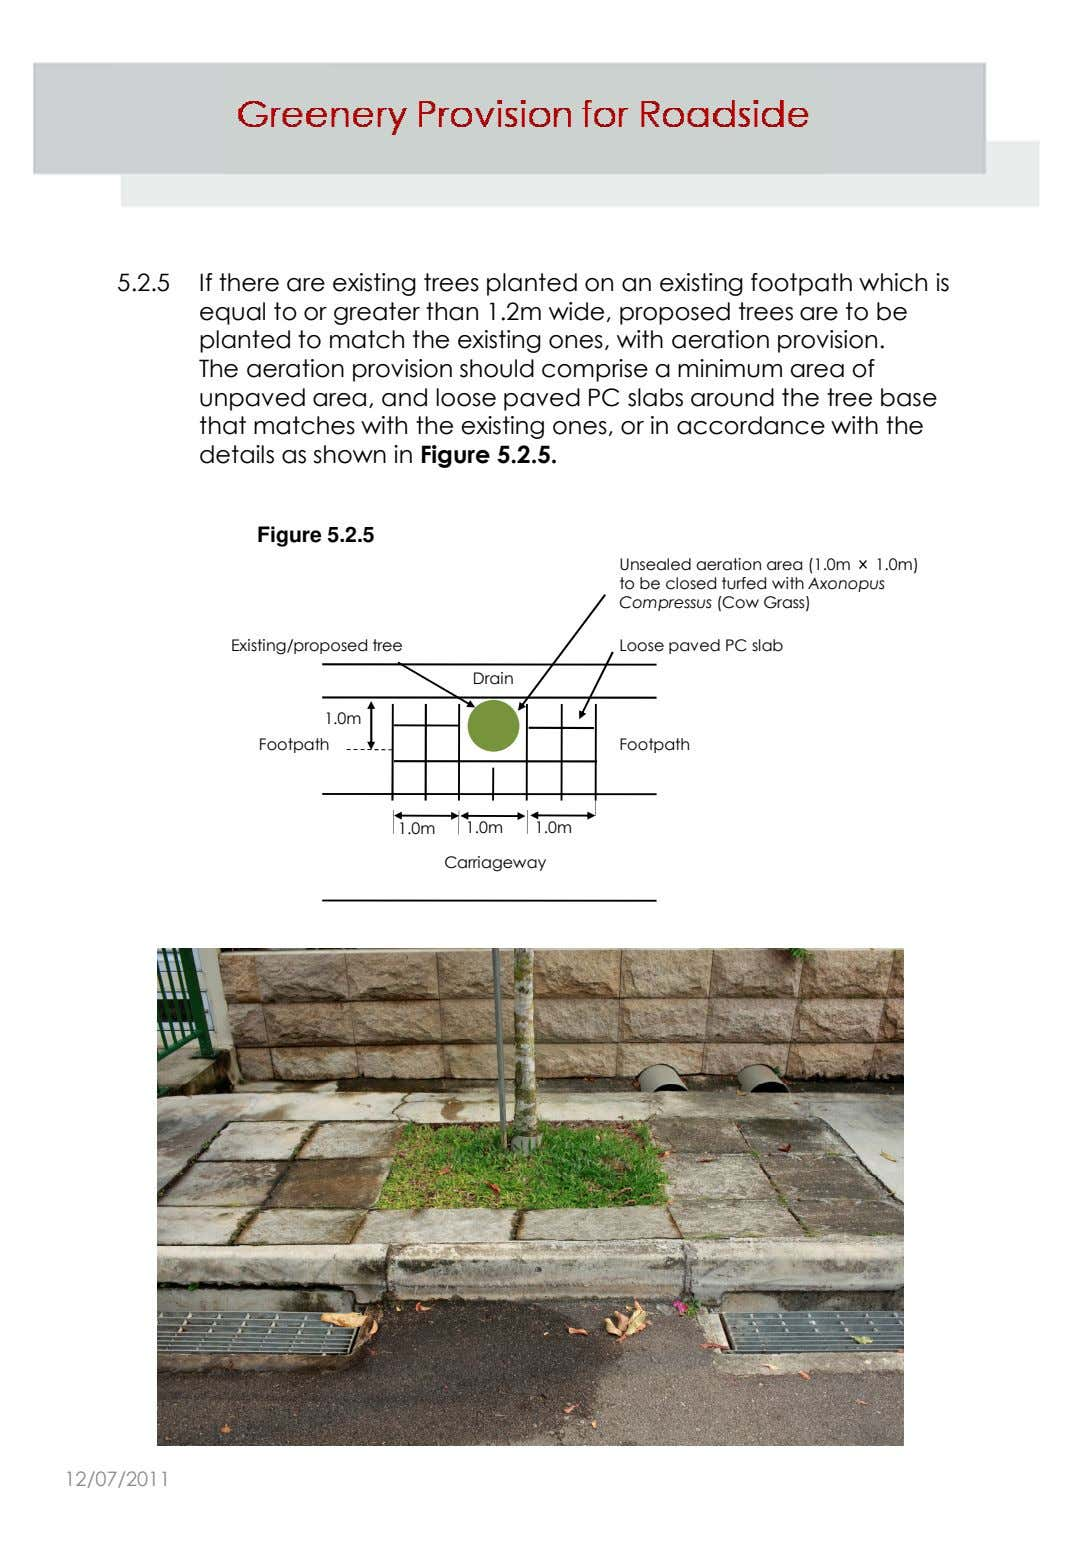 5.2.5 If there are existing trees planted on an existing footpath which is equal to